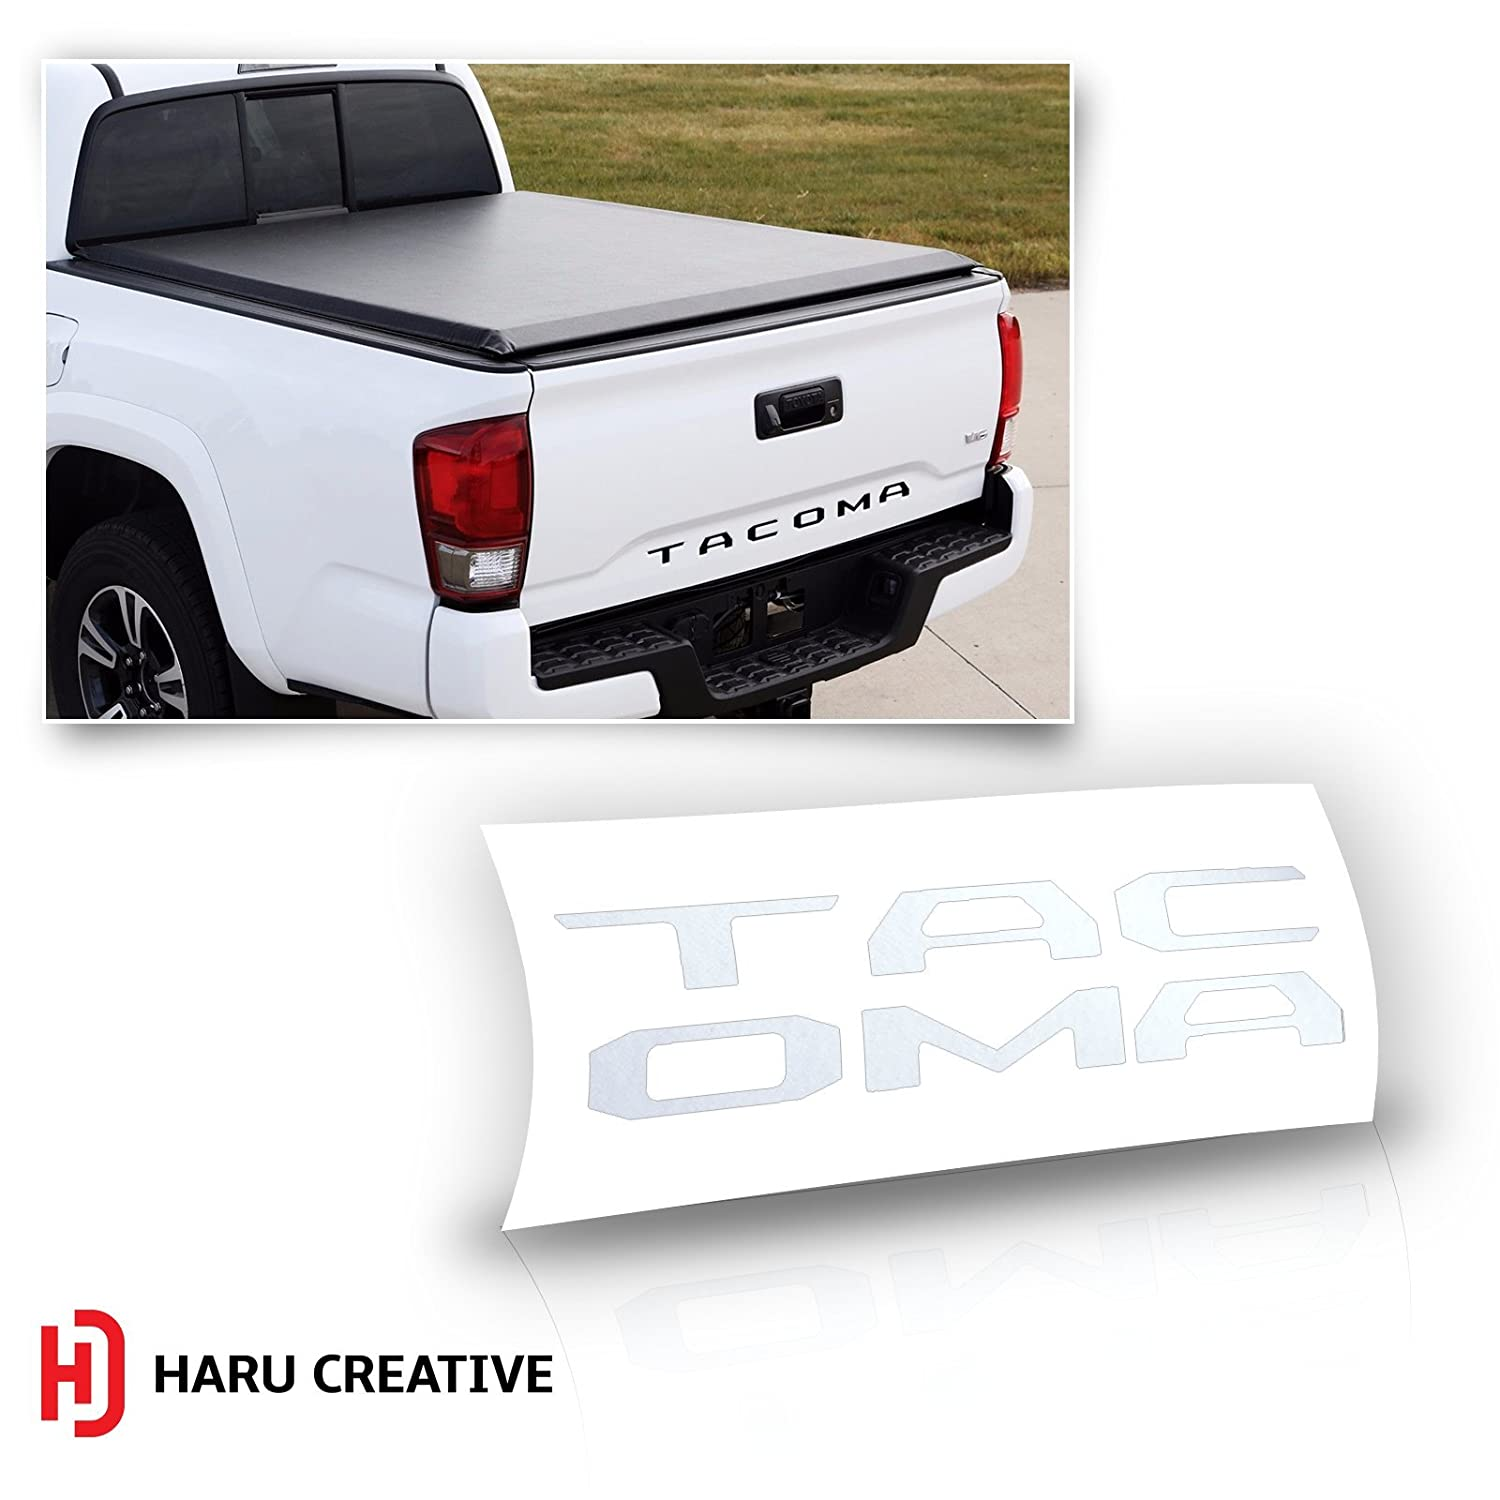 Haru Creative Chrome Silver Loyo Rear Trunk Tailgate Letter Insert Decal Compatible with and Fits Toyota Tacoma 2016 2017 2018 2019